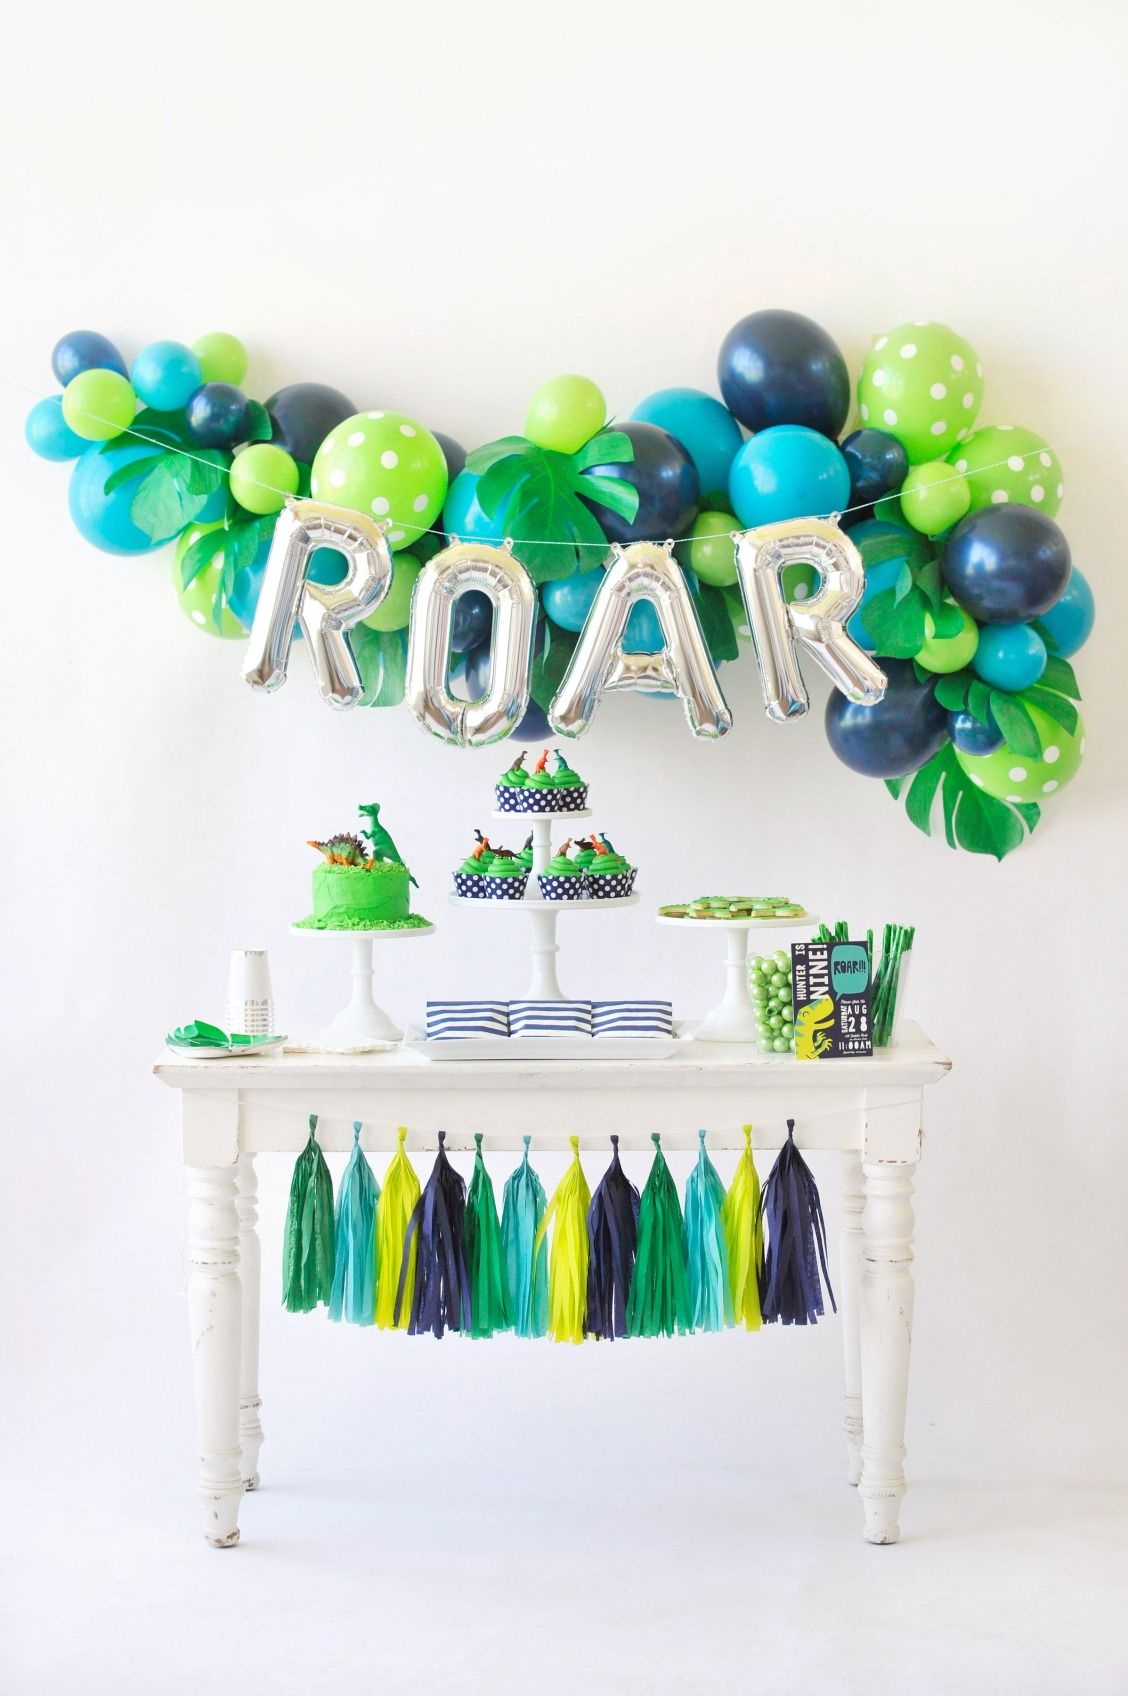 3 x Plastic Bunch of Balloons Cake Cupcake Toppers Decorations Up Birthday Party